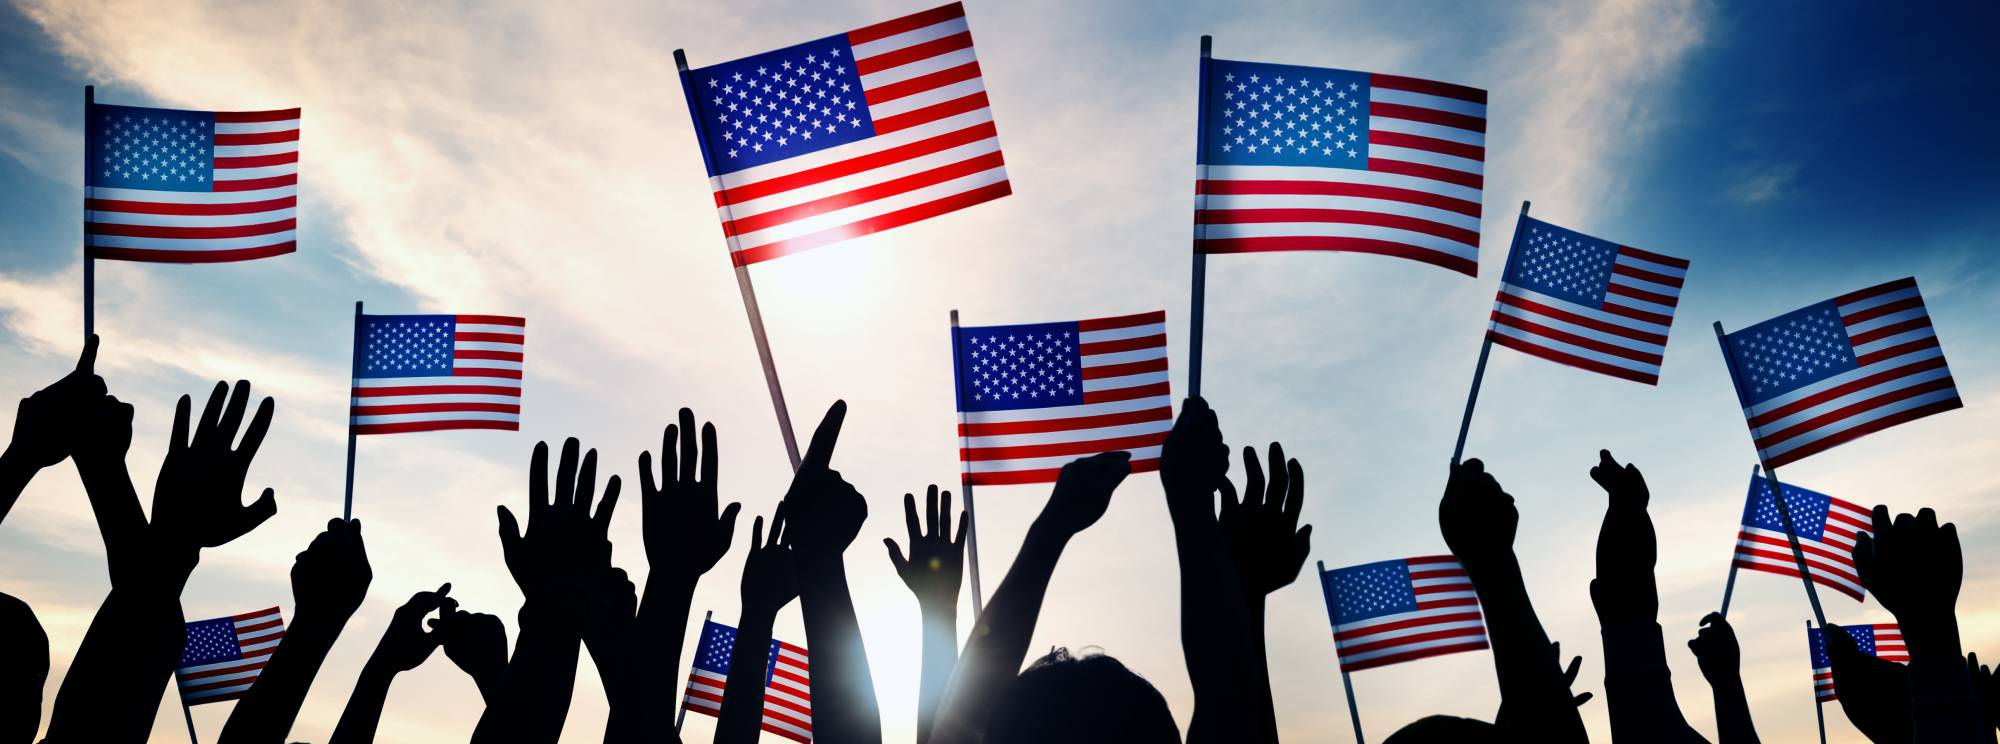 american flags being waved in the sun